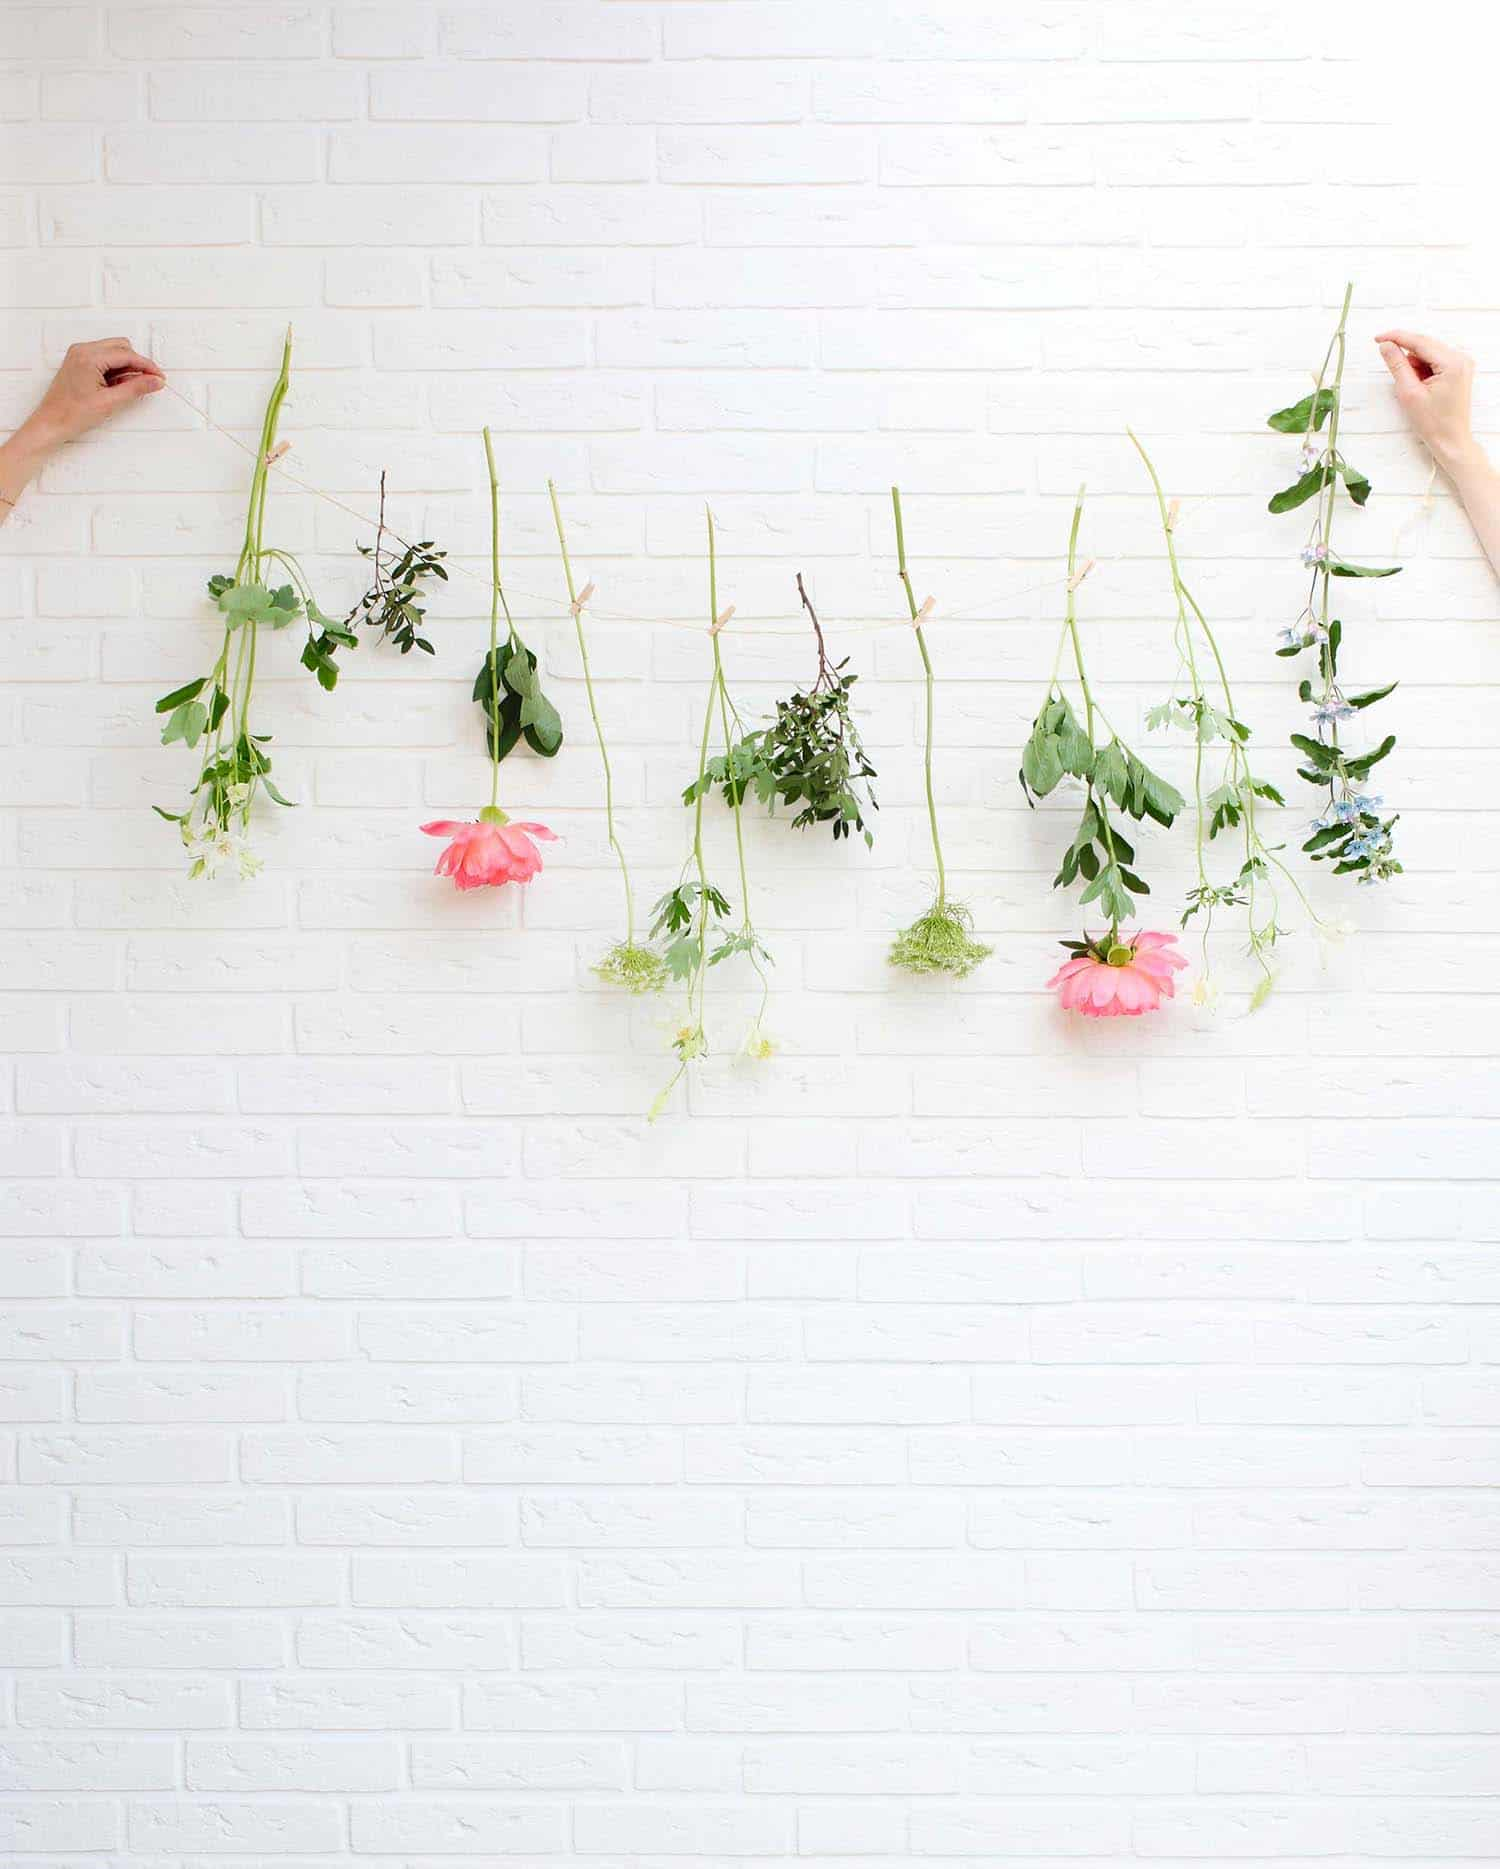 How To Decorate Your Home With Spring Floral Arrangements-12-1 Kindesign